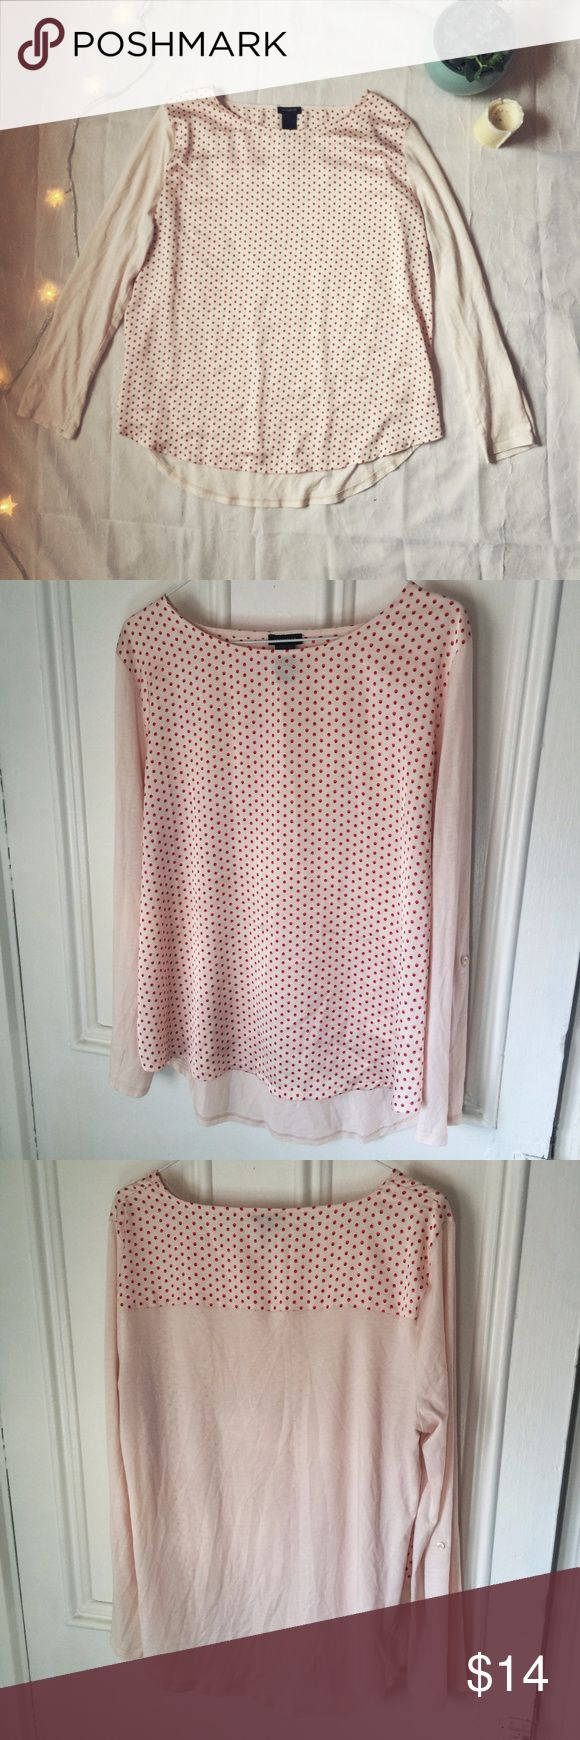 "Ann Taylor polka dot blouse This blouse is in great condition and has a polyester, polka dot body and cotton/modal sleeves that can be buttoned up to 3/4 length. Size large.   Bust: 40"" Upper arm sleeve circumference: 18"" Ann Taylor Tops Blouses"